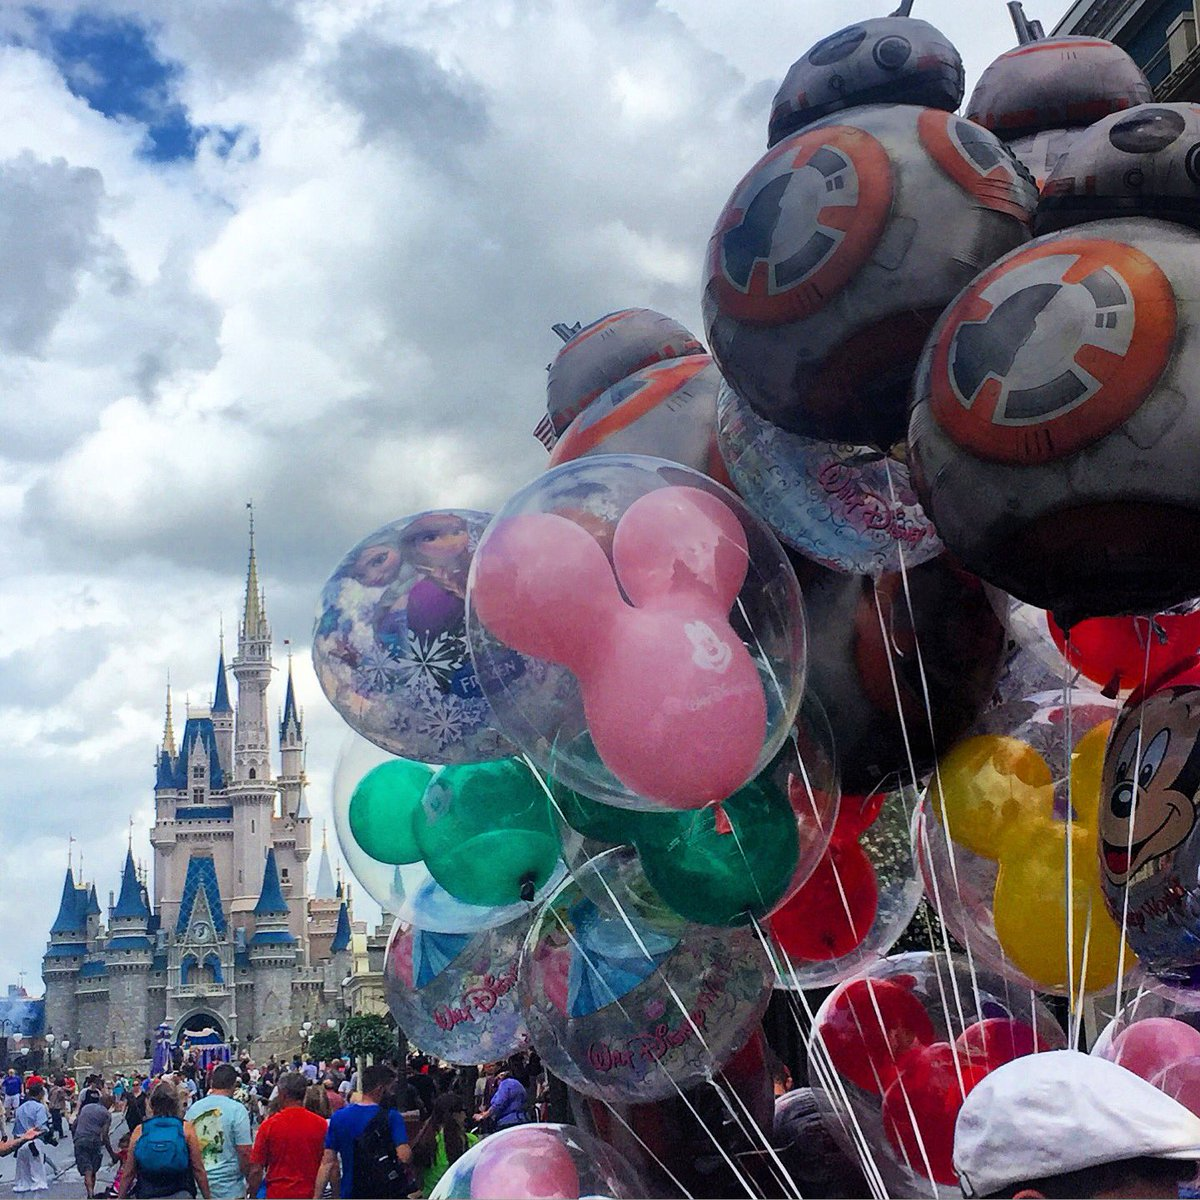 Disney's Magic Kingdom Theme Park, Disney balloons on Main Street USA